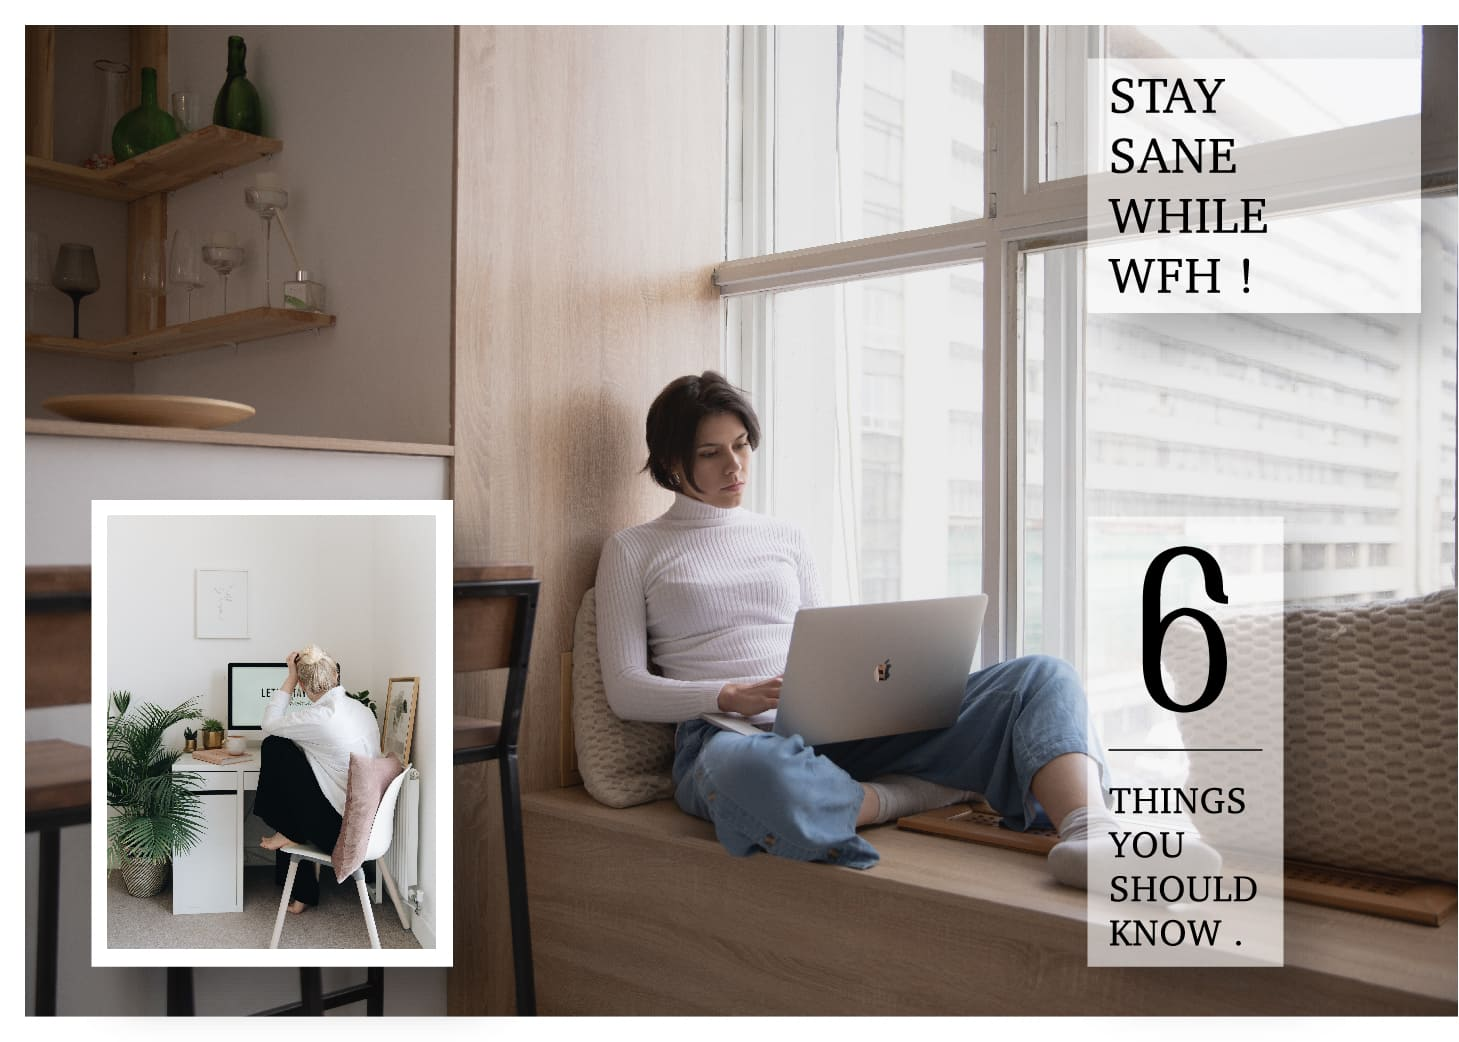 「Stay Sane While WFH! 6 Things You Should Know遠距工作」OMG?!6個在家的你我都該注意的事:準時吃飯,更要準時下班!